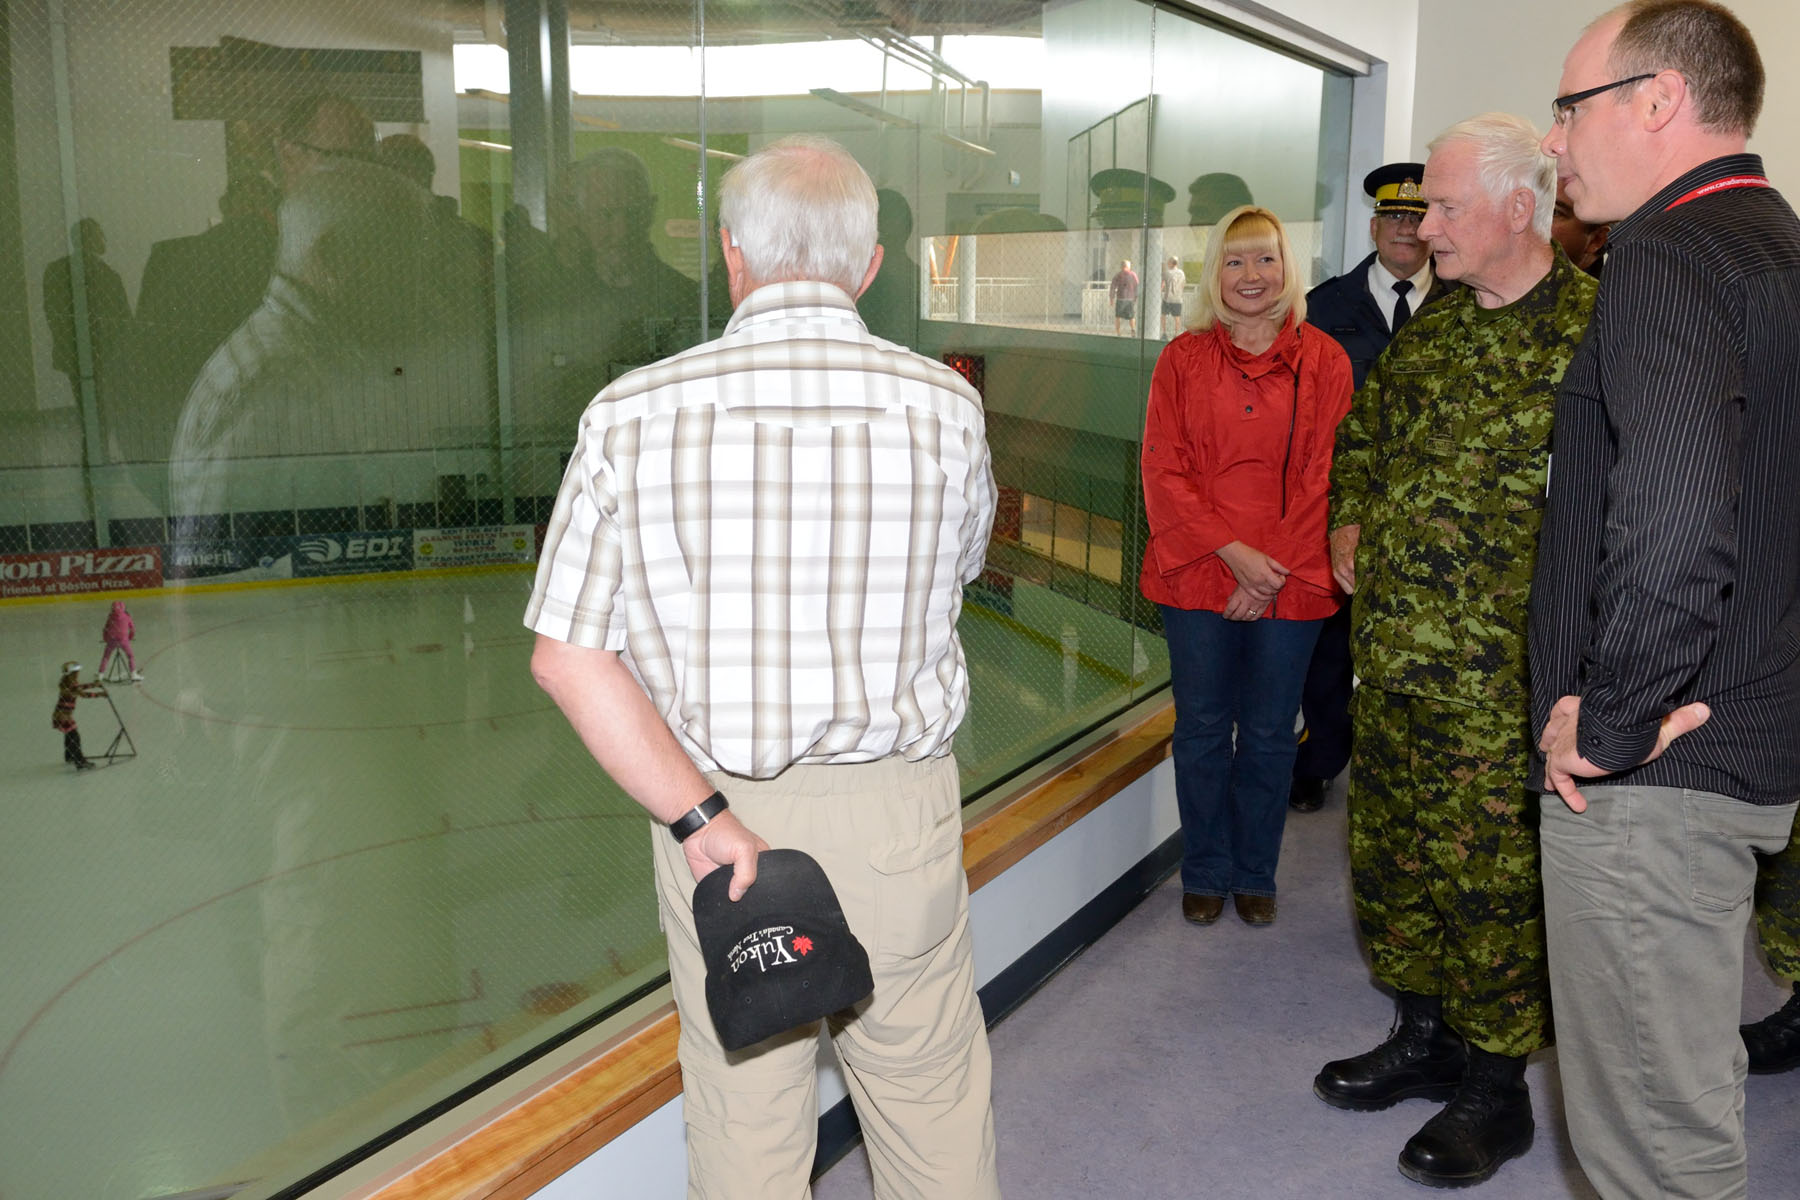 The Governor General also toured a mobile medical unit situated at the Canada Games Centre.